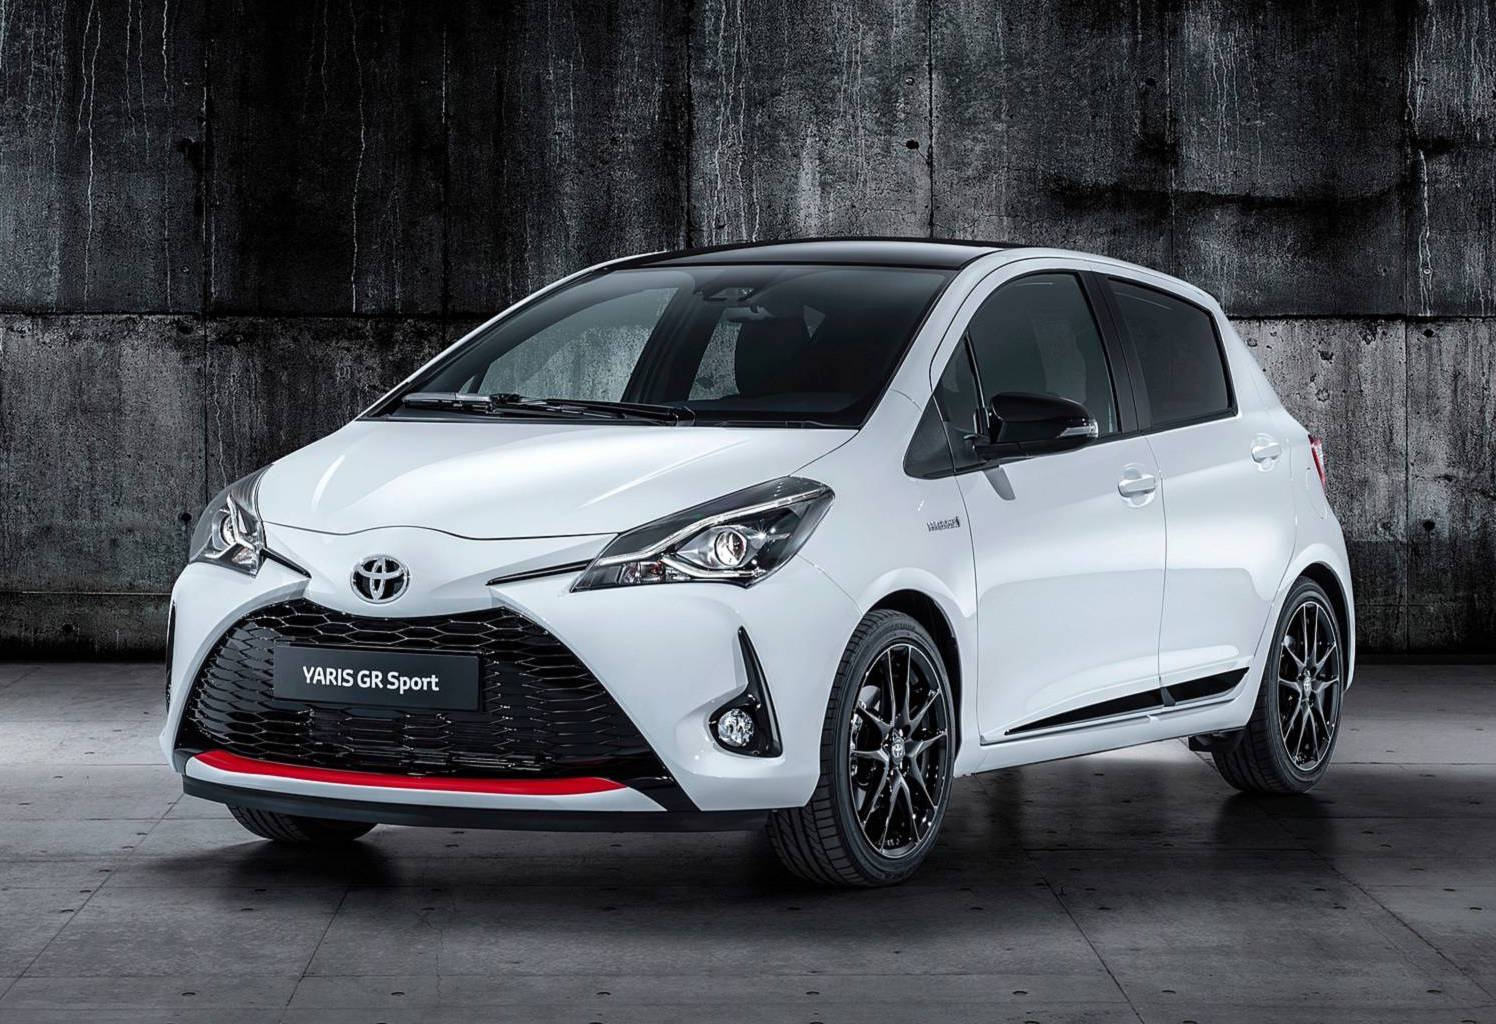 toyota yaris grmn sport announced inspired by gazoo racing version performancedrive. Black Bedroom Furniture Sets. Home Design Ideas